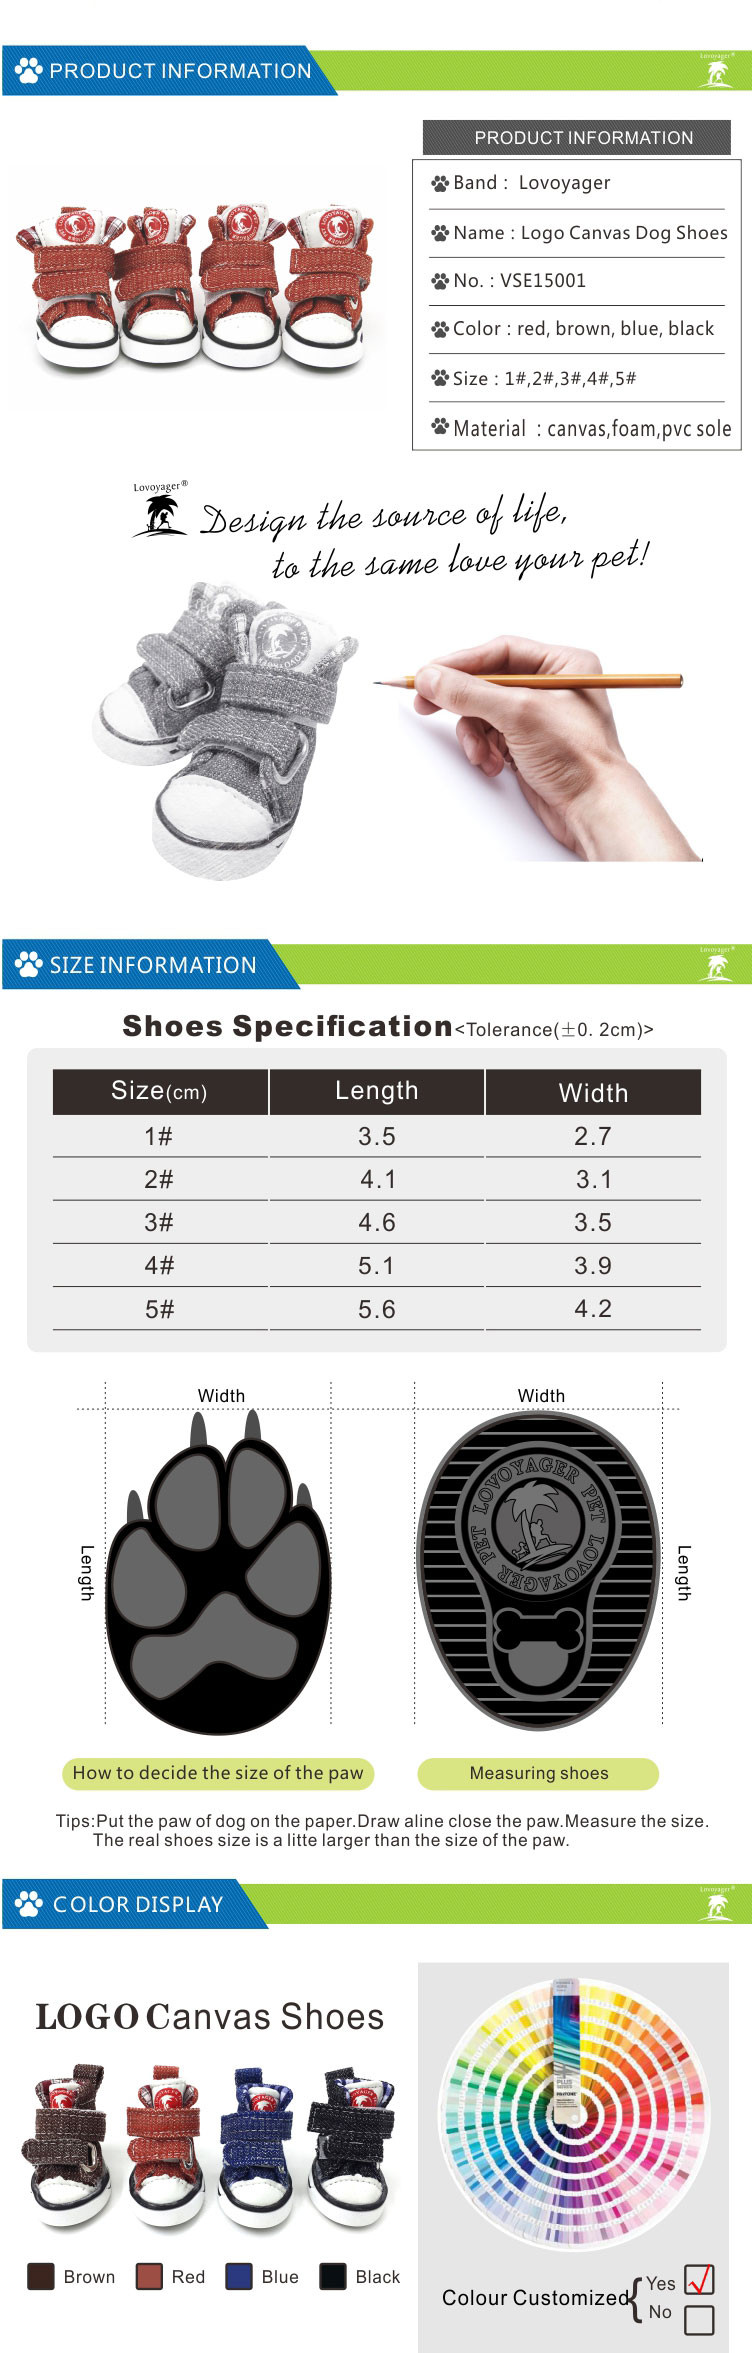 medium resolution of dog sneakers lovoyager wholesale pet accessories canvas dog shoes non slip blue jean dog sneakers dog boots